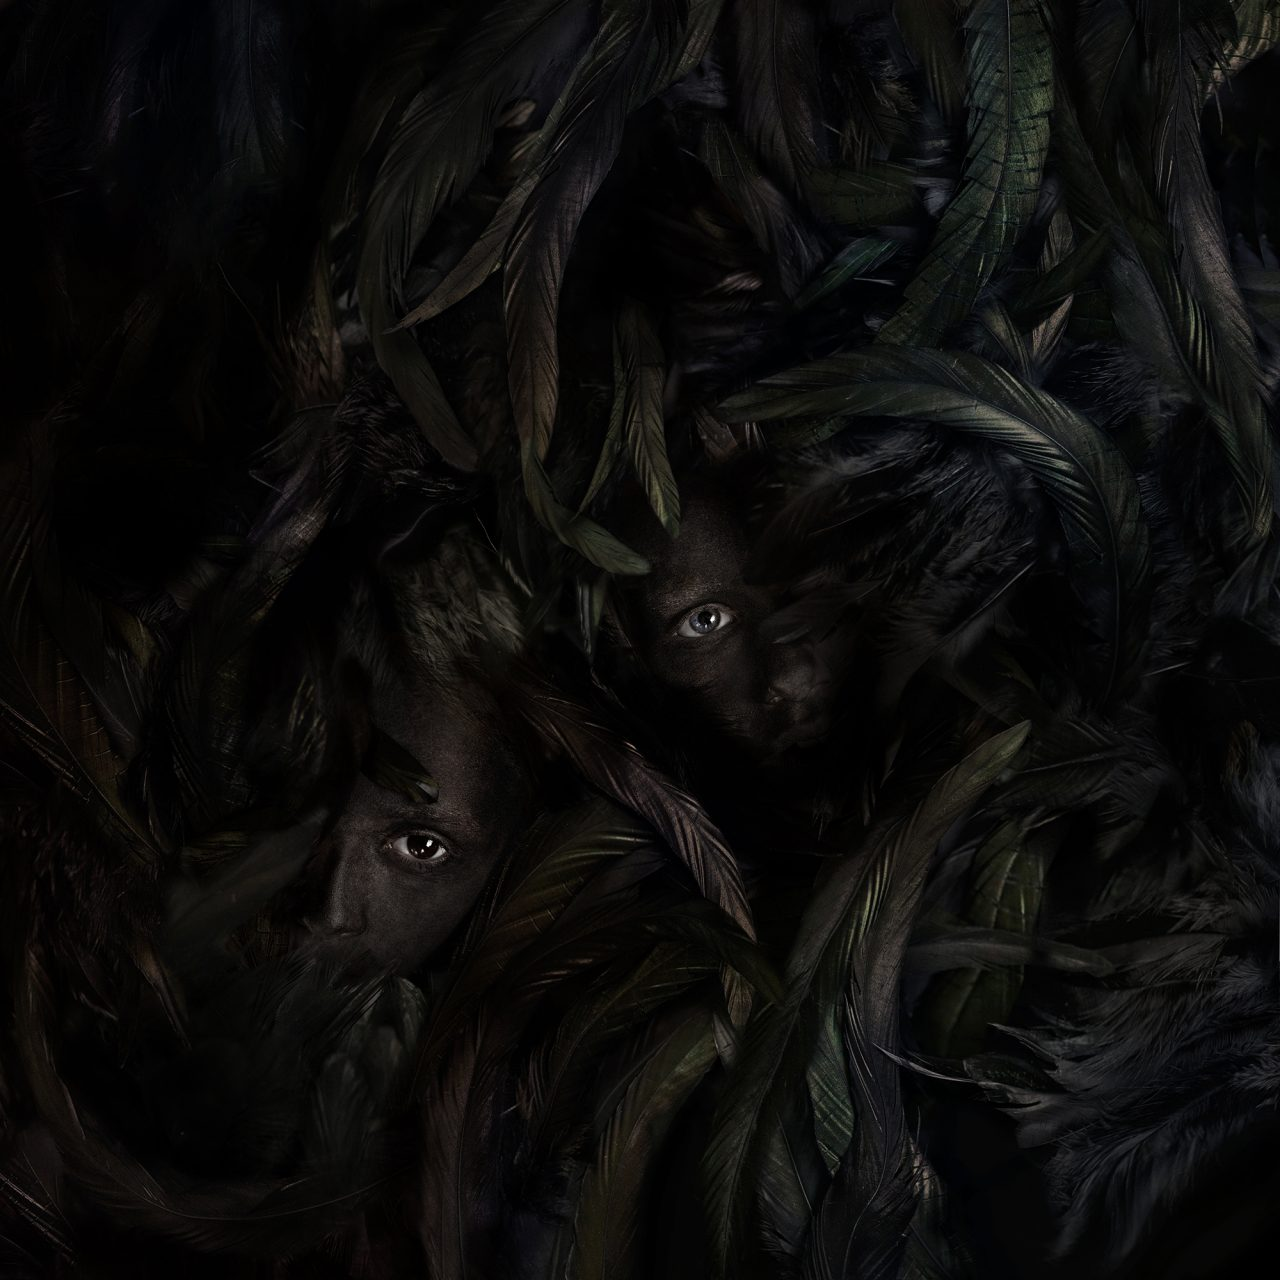 """Black faces in a sea of black feathers. Photo by Greta Do. Titled """"silence""""."""